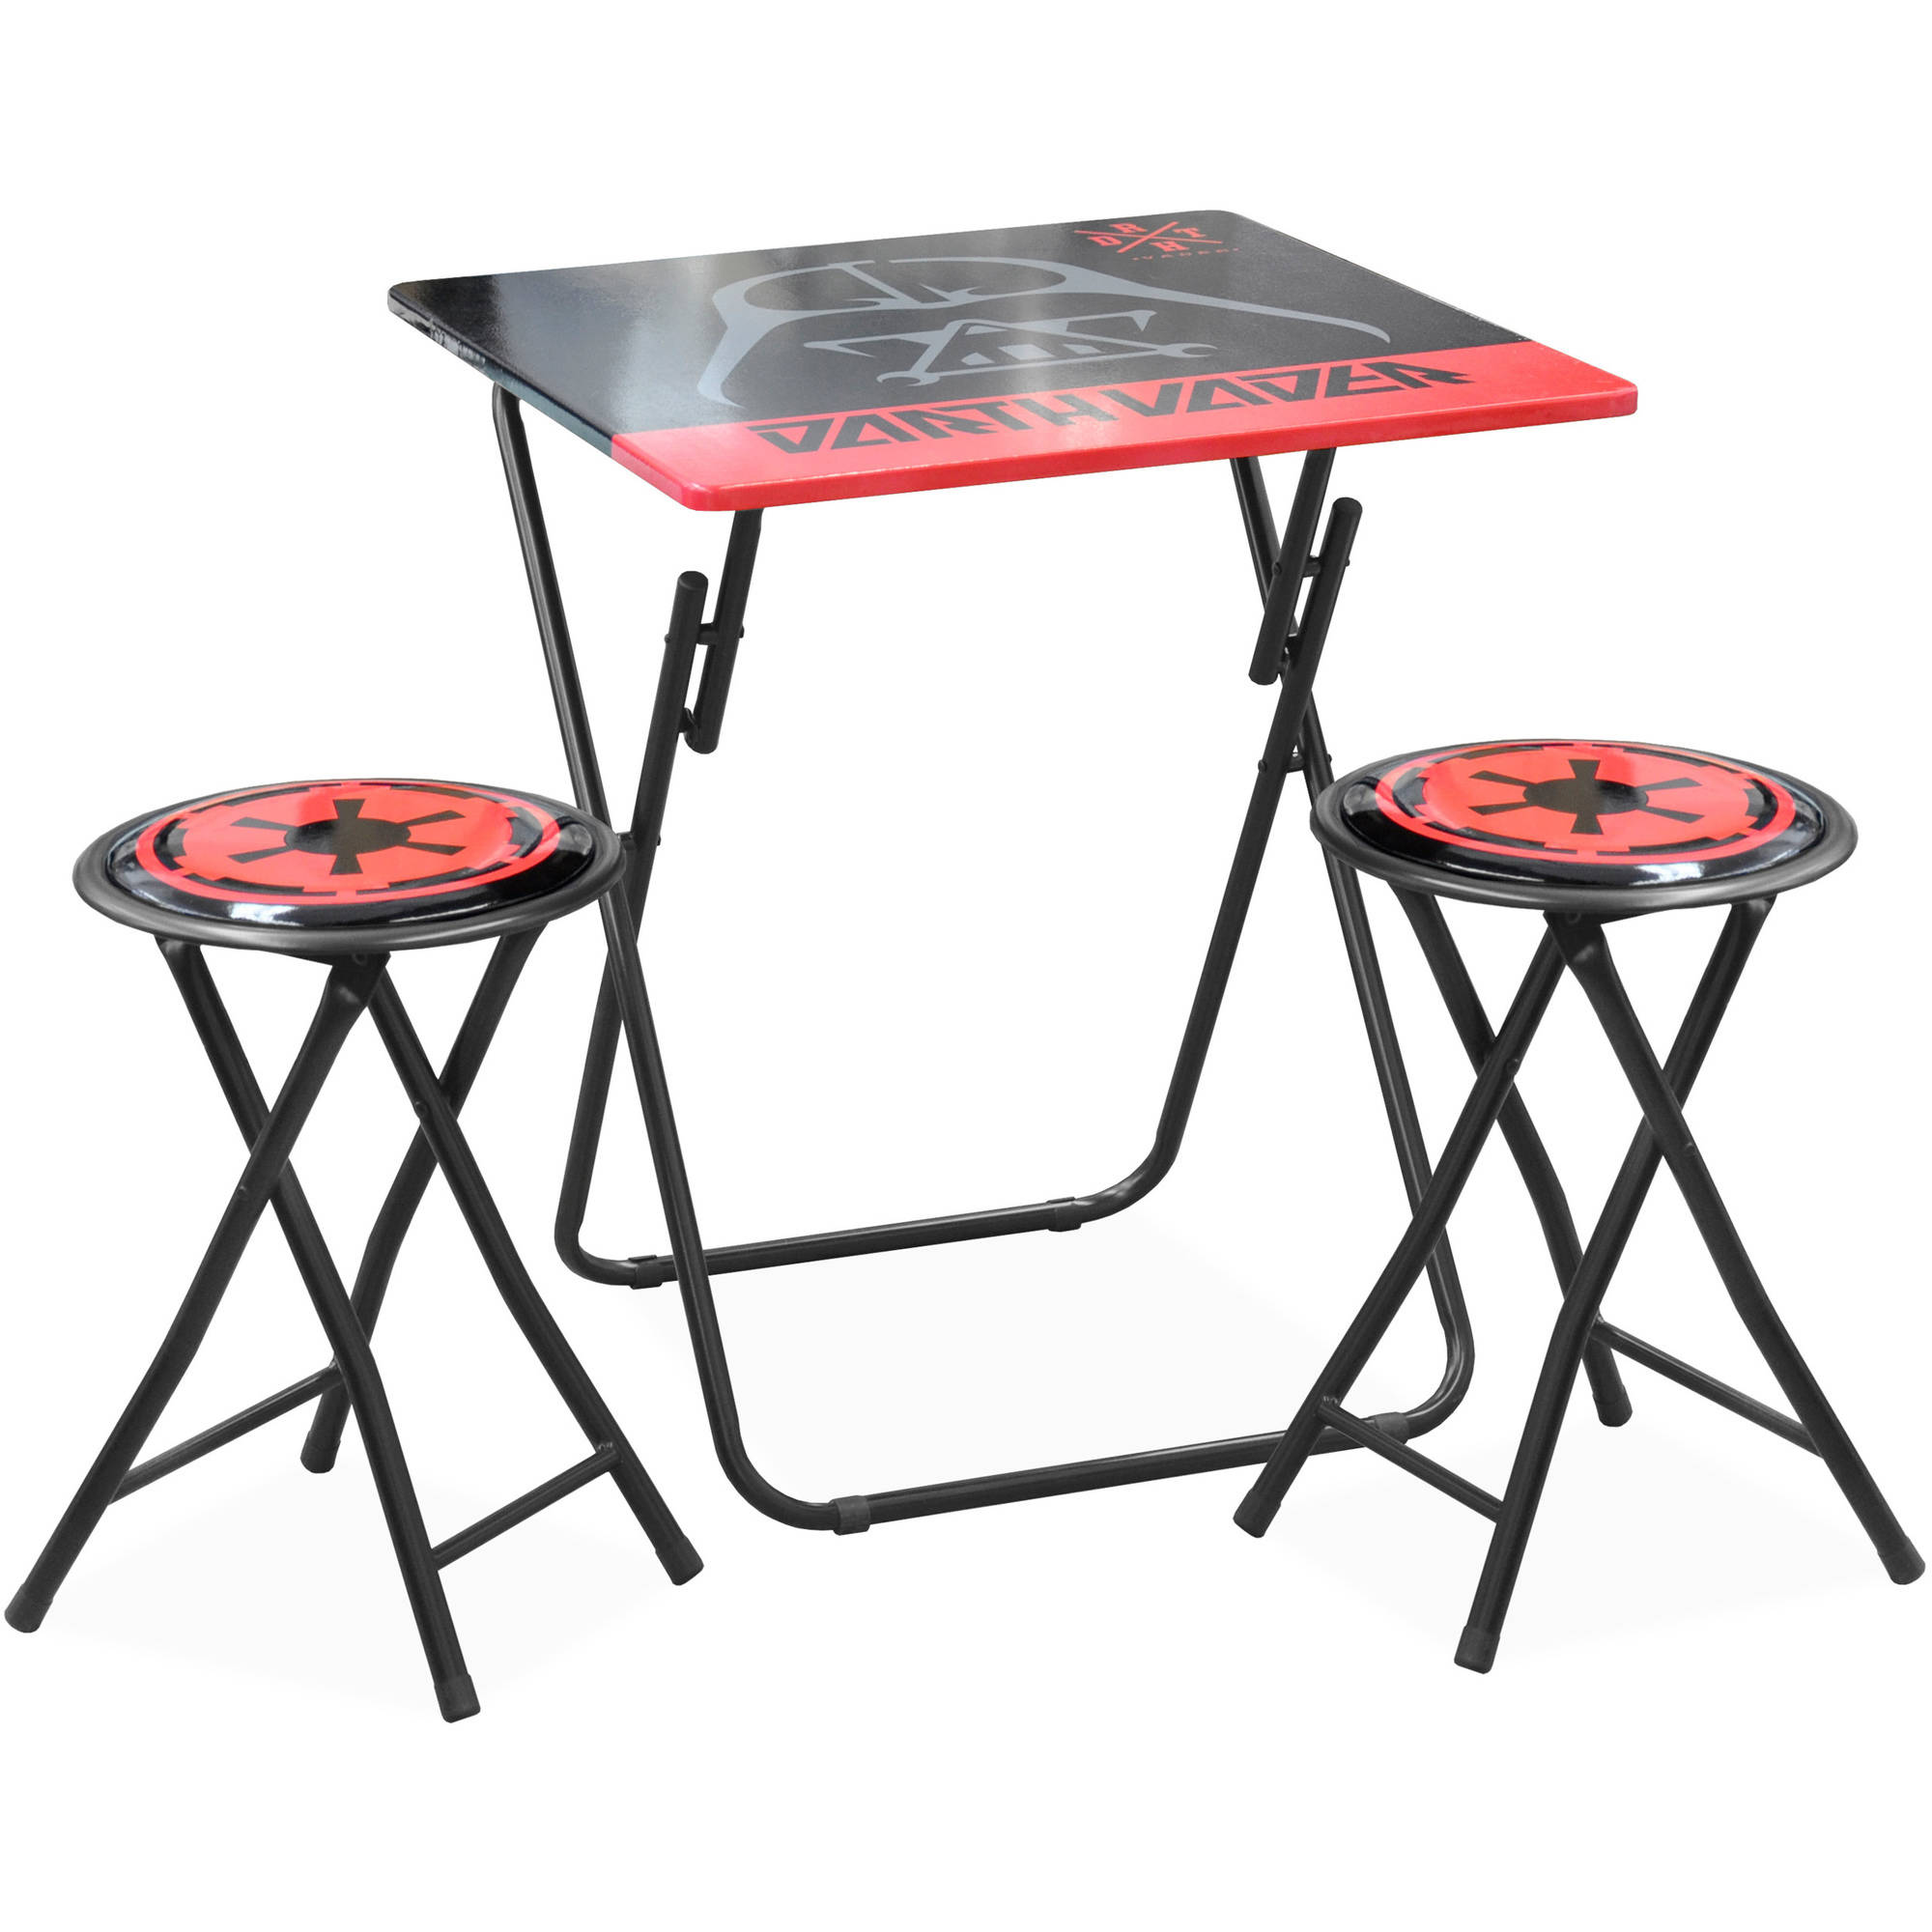 star wars folding desk and chair set - walmart